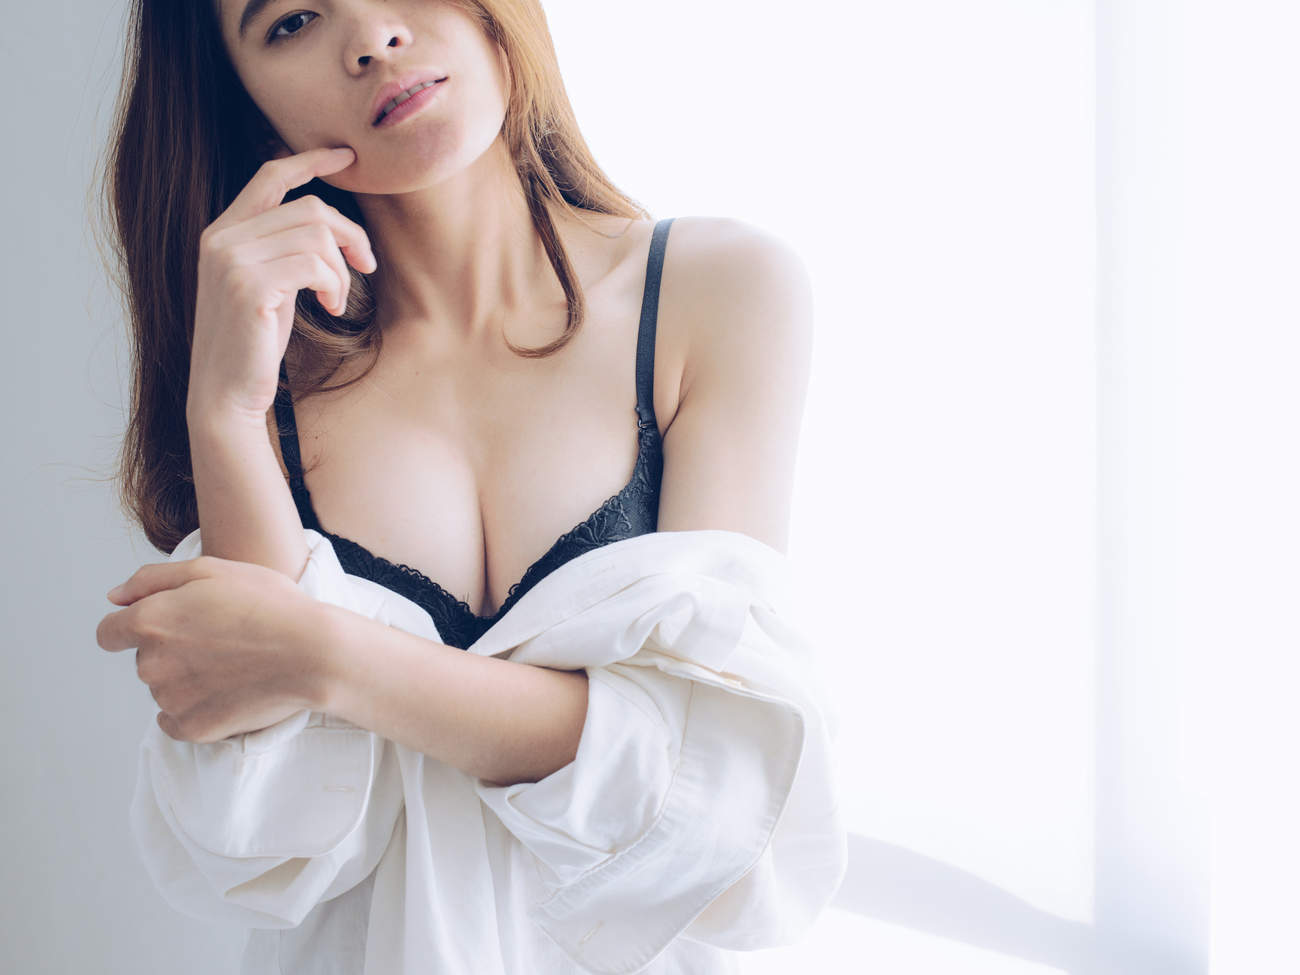 small-chest-lingerie-gettyimages-826966930